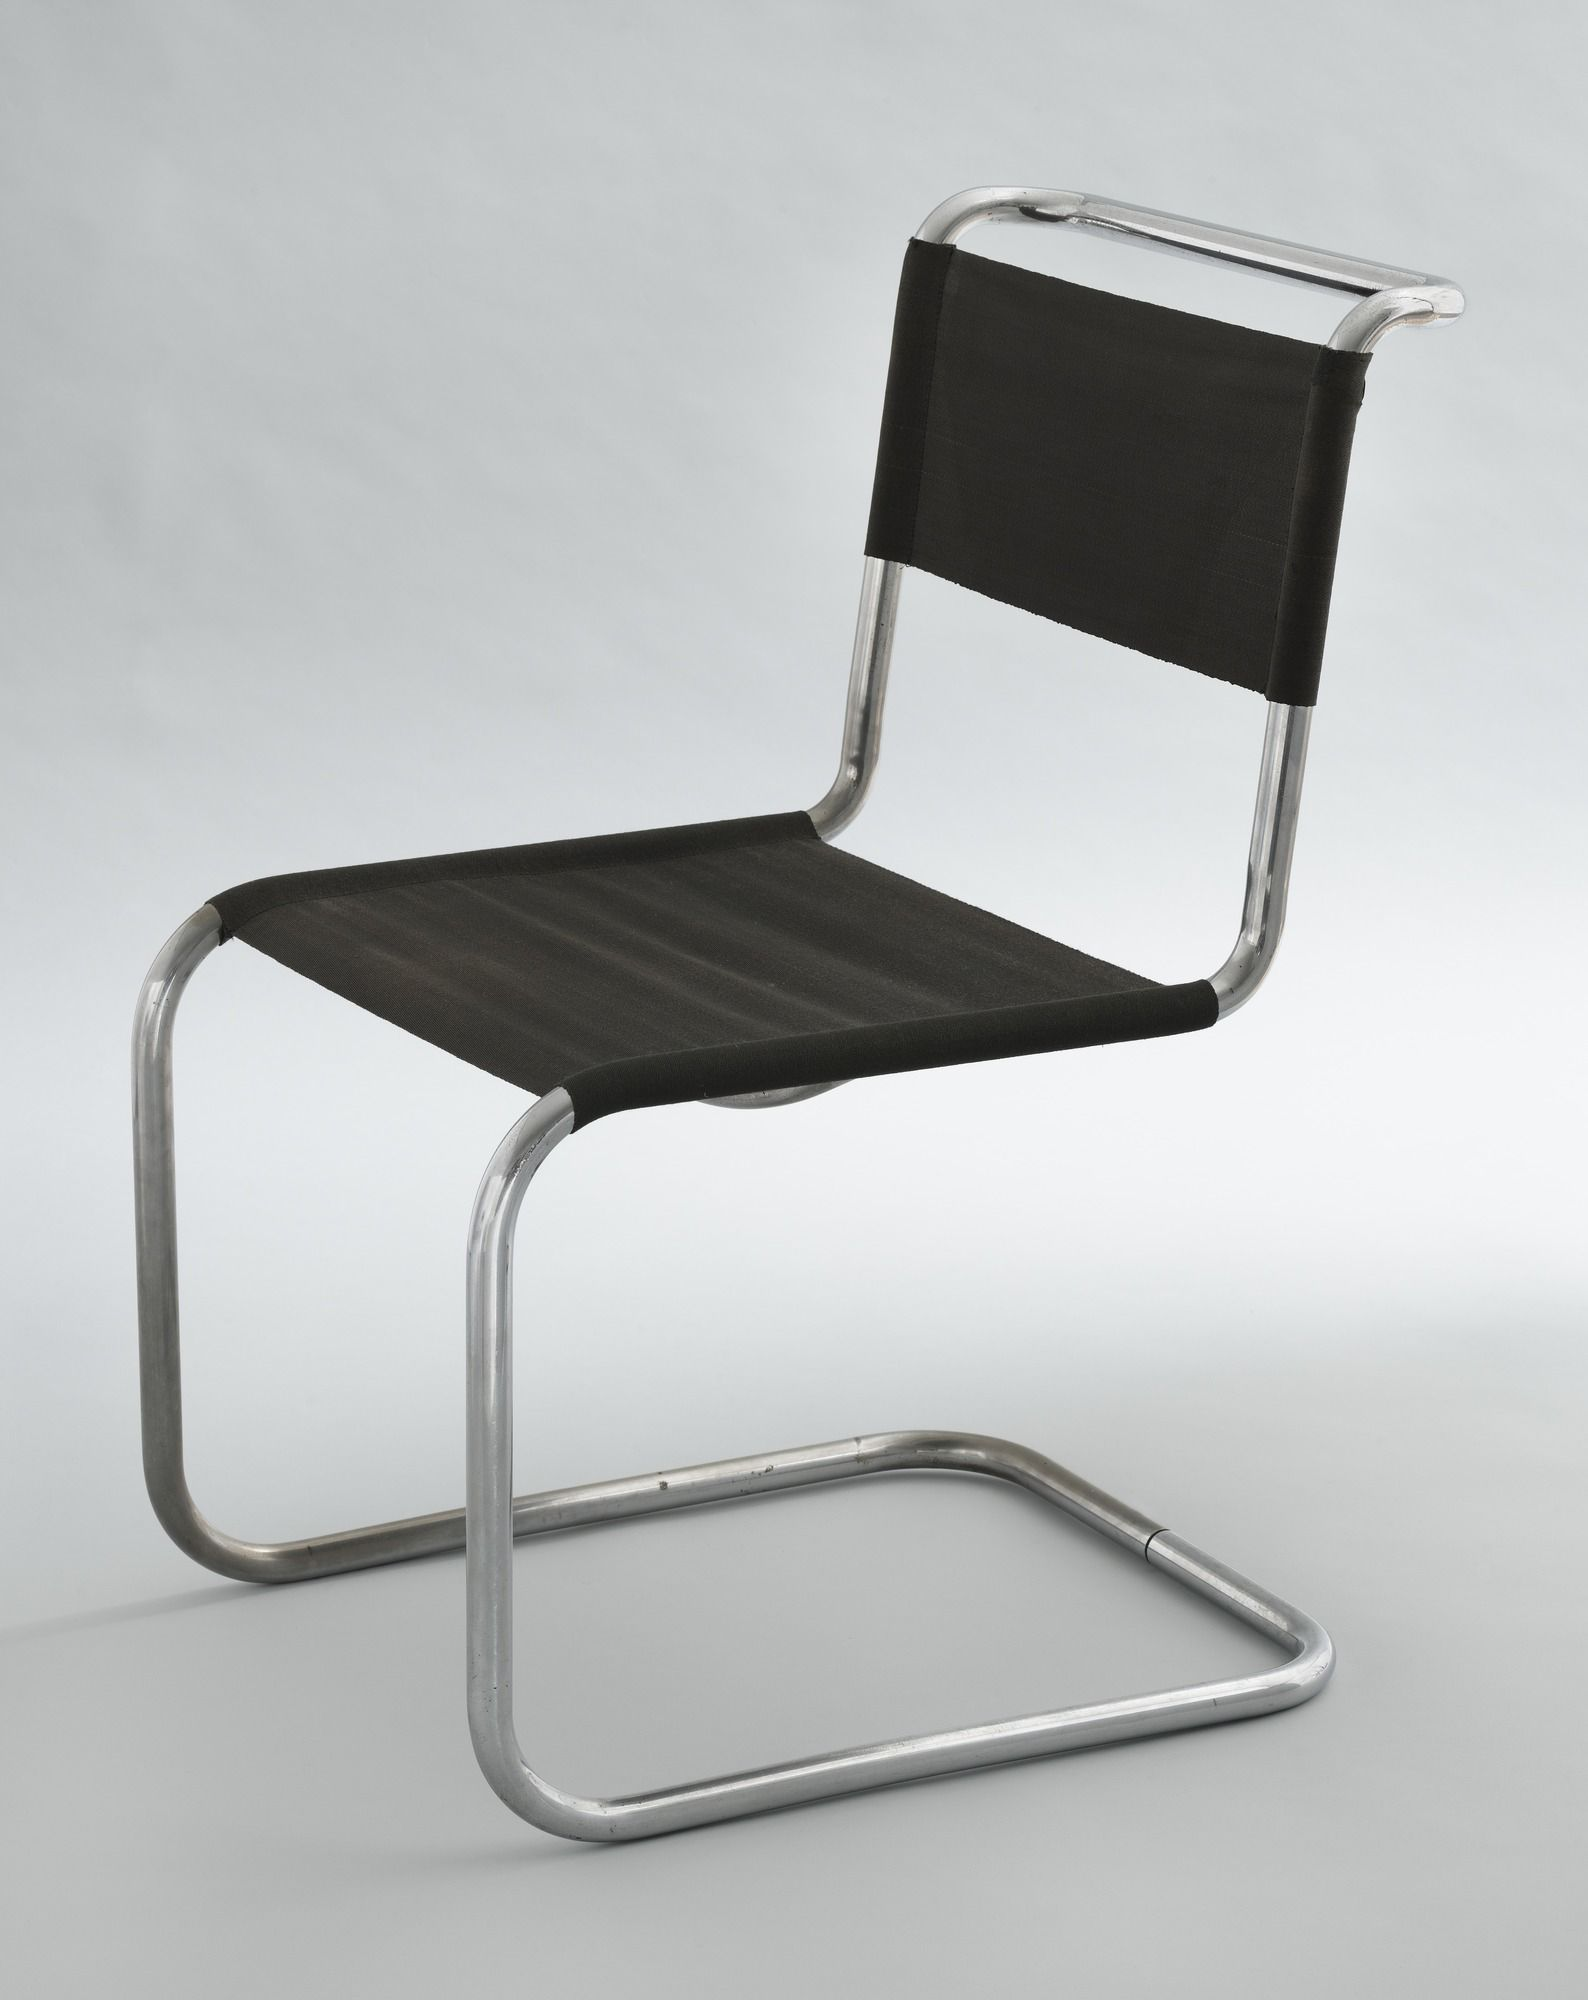 Chair model B33 Marcel Breuer 1927 28 Chrome plated tubular